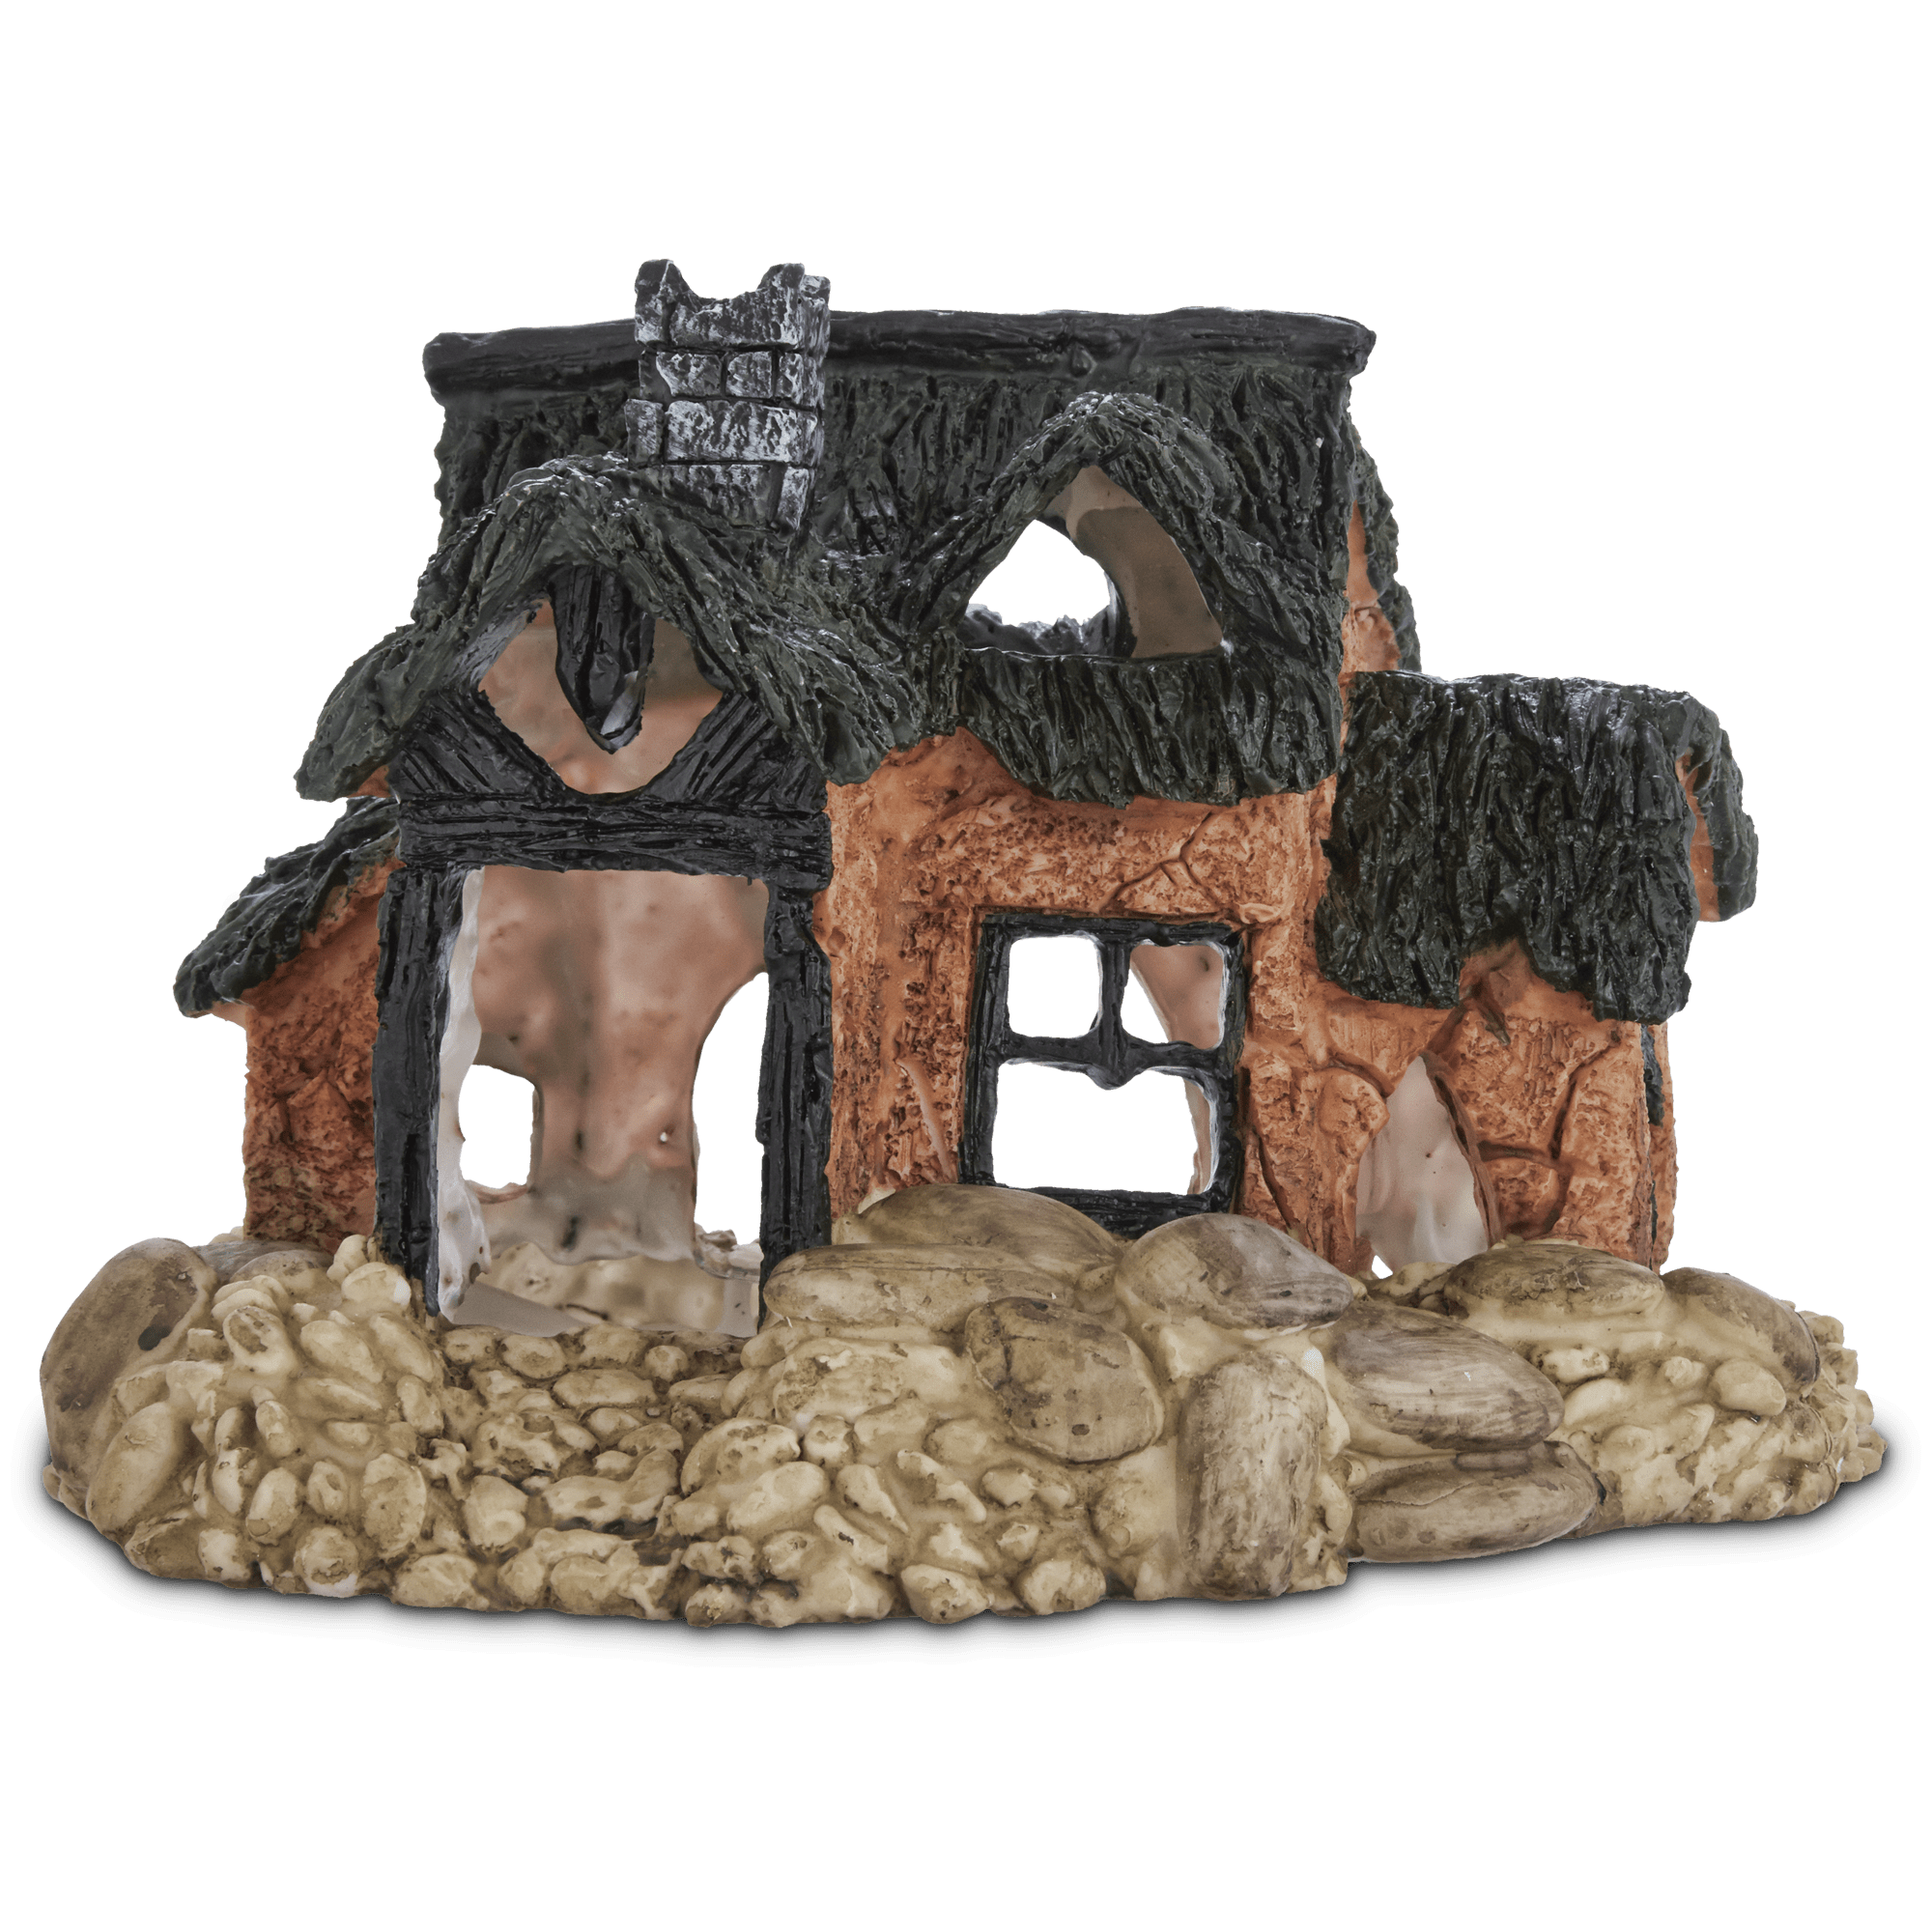 Detailed fish farm home adds a country charm. Includes swim through holes for added fun. Perfectly sized for medium-large freshwater tanks. Made of non-toxic, fish-safe materials and colors.